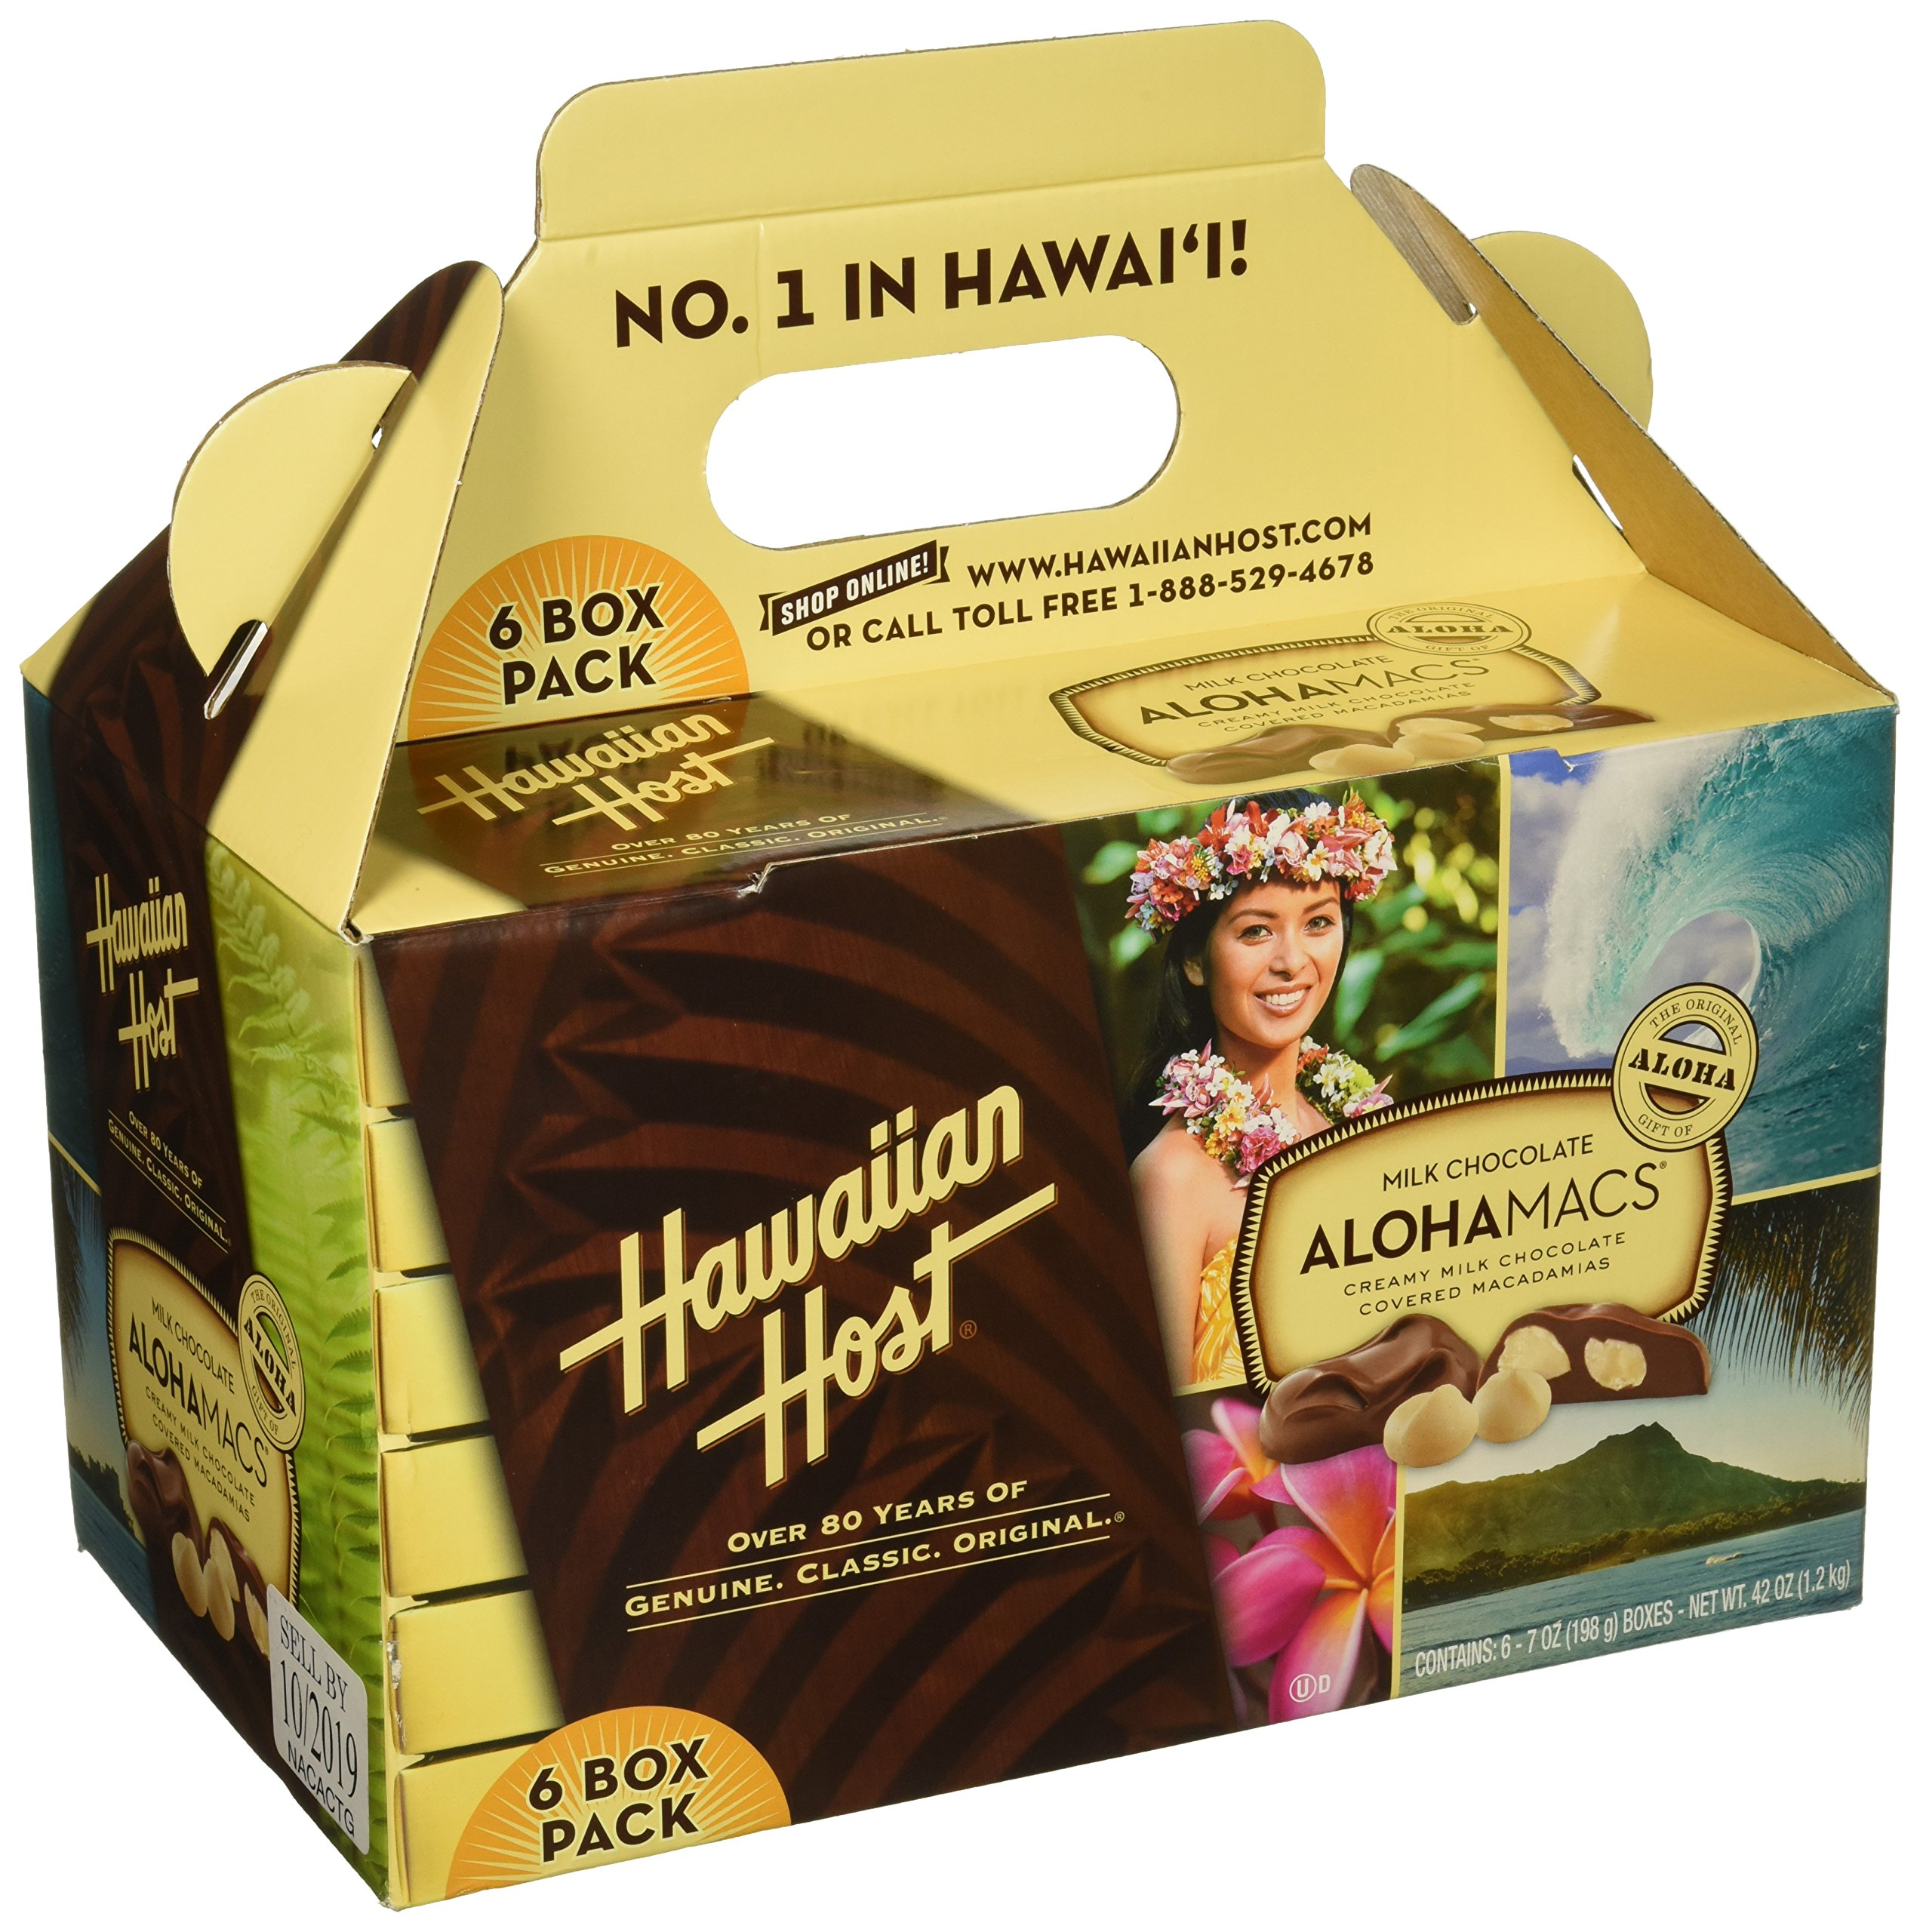 Hawaiian Host Alohamacs Milk Chocolate The Original Chocolate Covered Macadamia Nut, 42 Ounce by Hawaiian Host